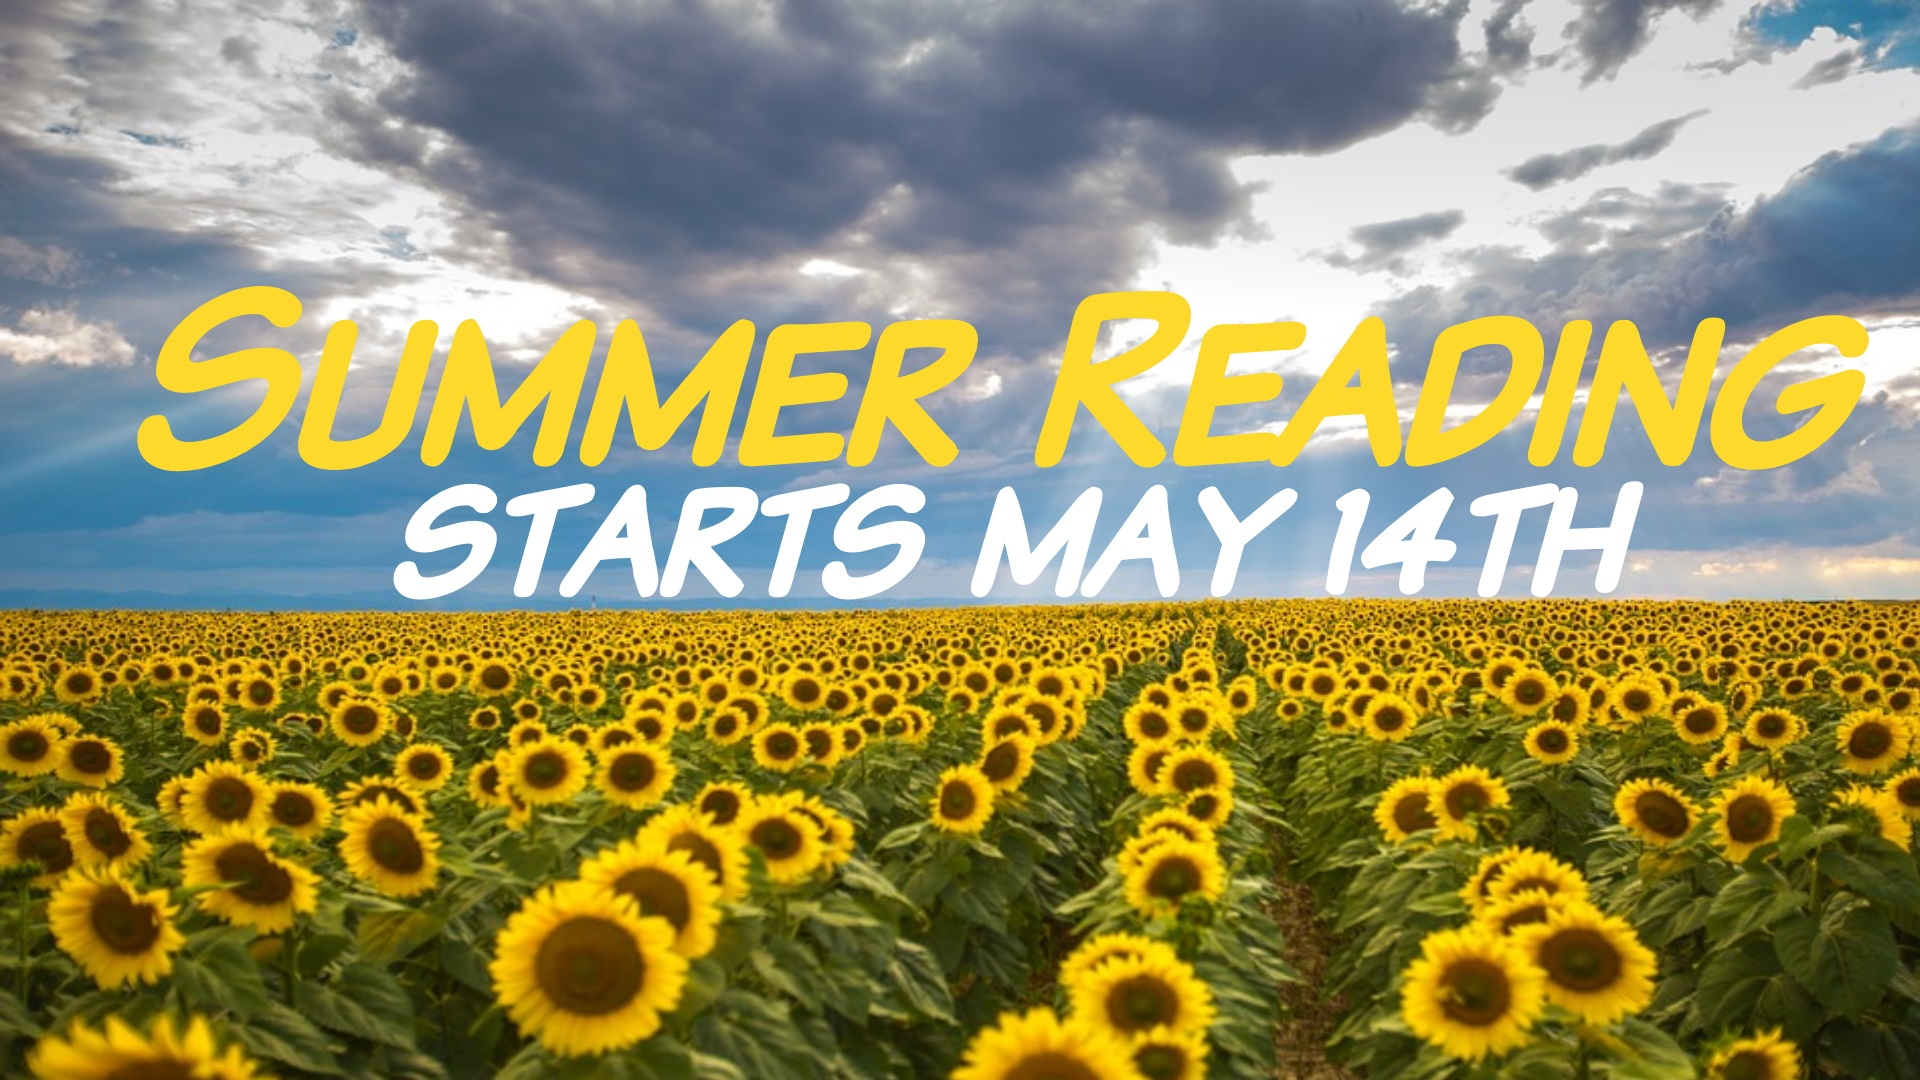 Summer Reading Starts May 14th